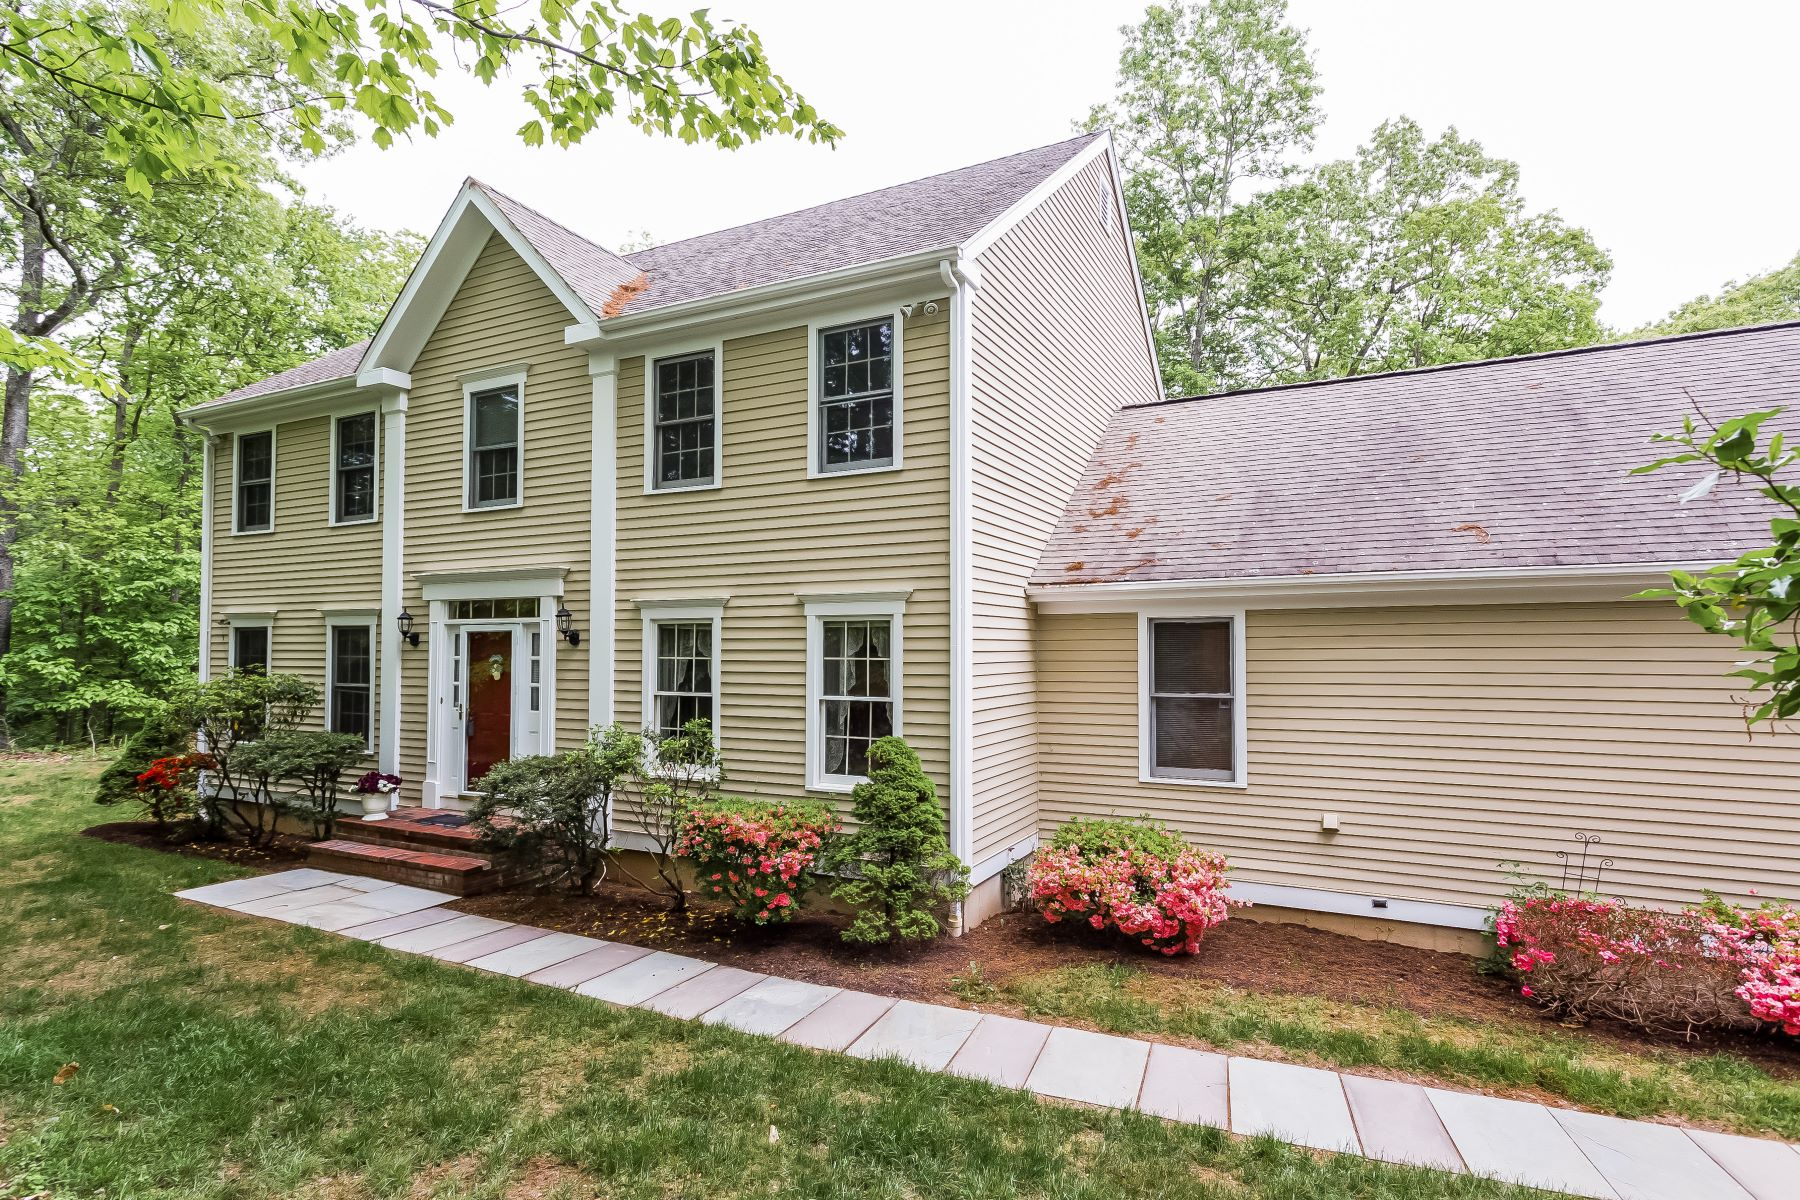 Casa Unifamiliar por un Venta en Level Private Property 98 Wolfpit Road Southbury, Connecticut 06488 Estados Unidos